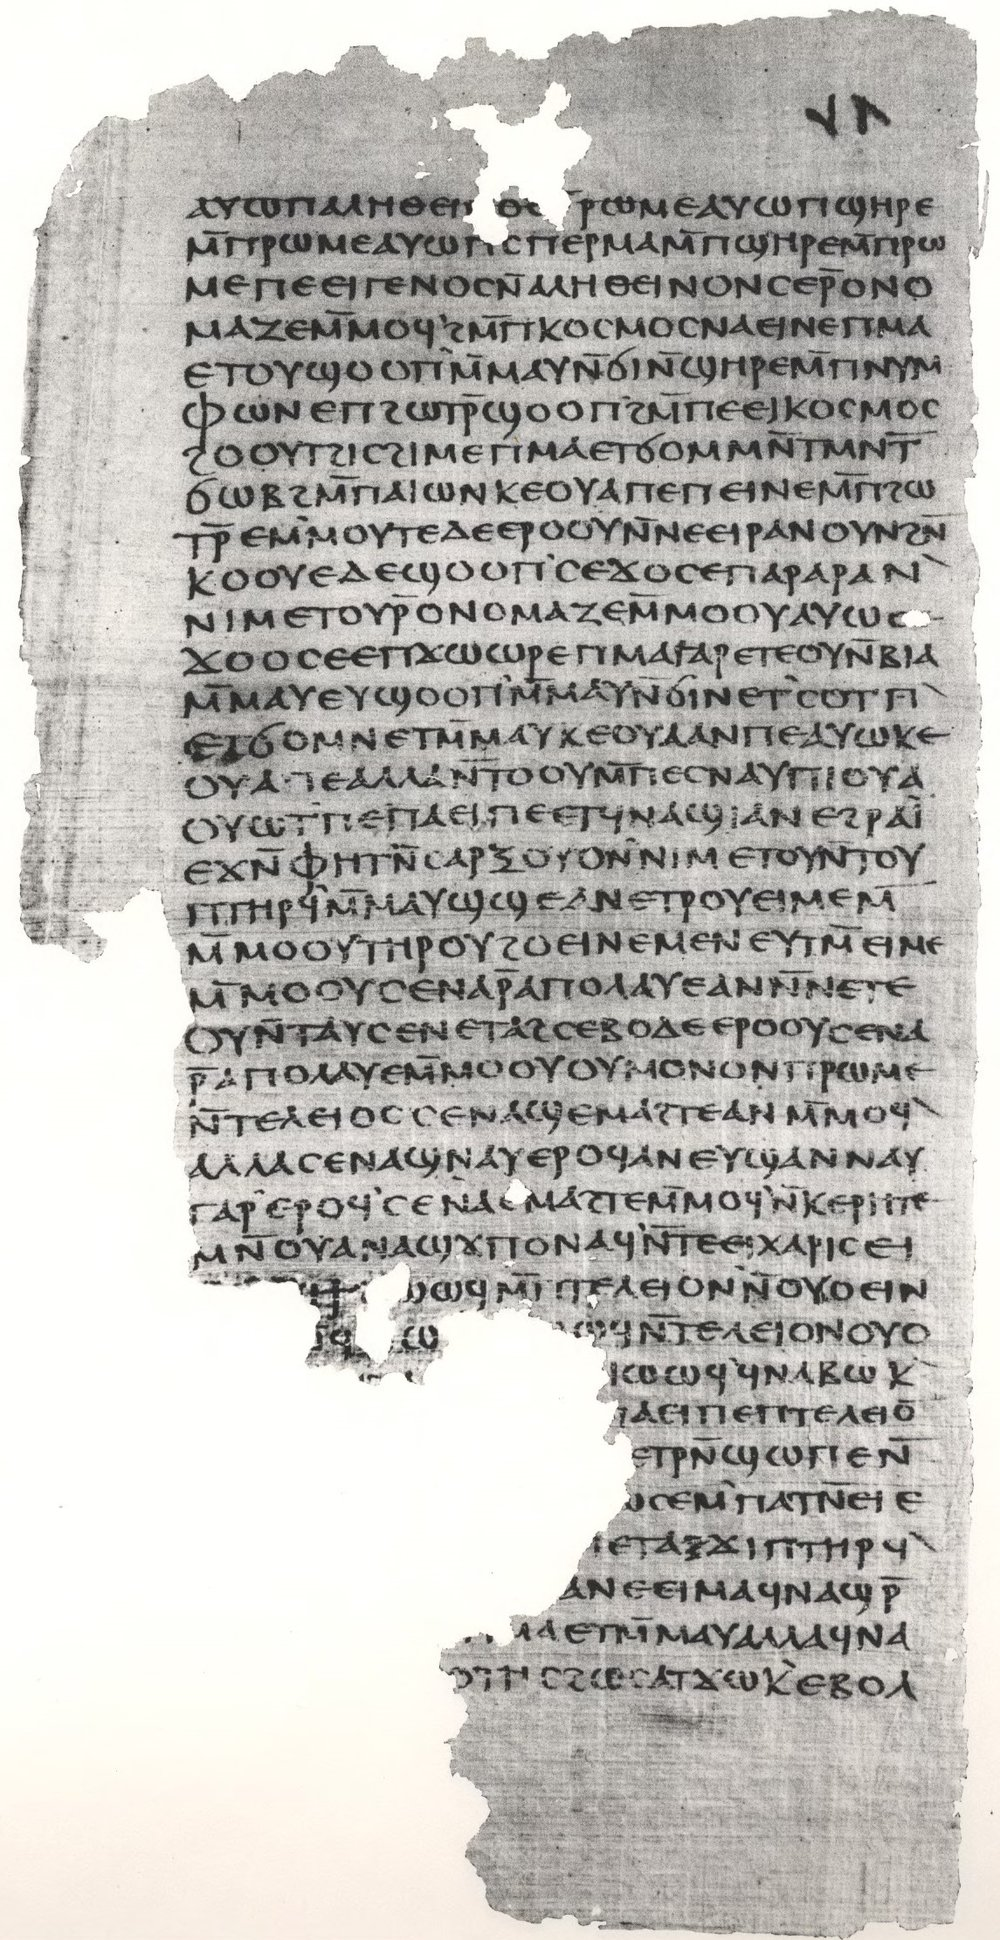 Gospel_of_Philip_facsimile_Page_76.jpg